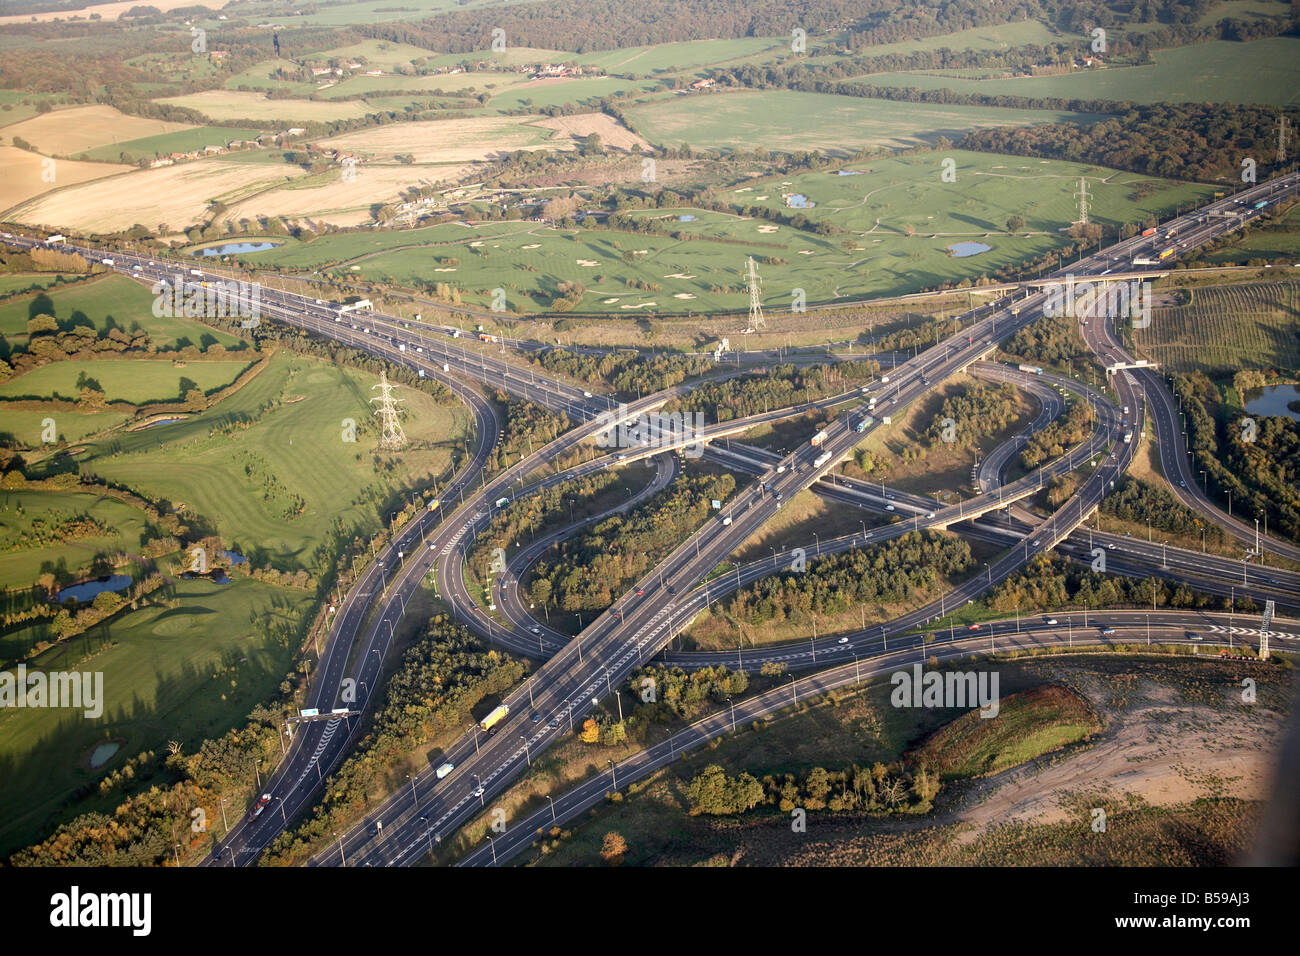 Aerial view east of M25 Motorway Junction 27 M11 Motorway Junction 6 Hobbs Cross Golf Centre country fields Epping - Stock Image